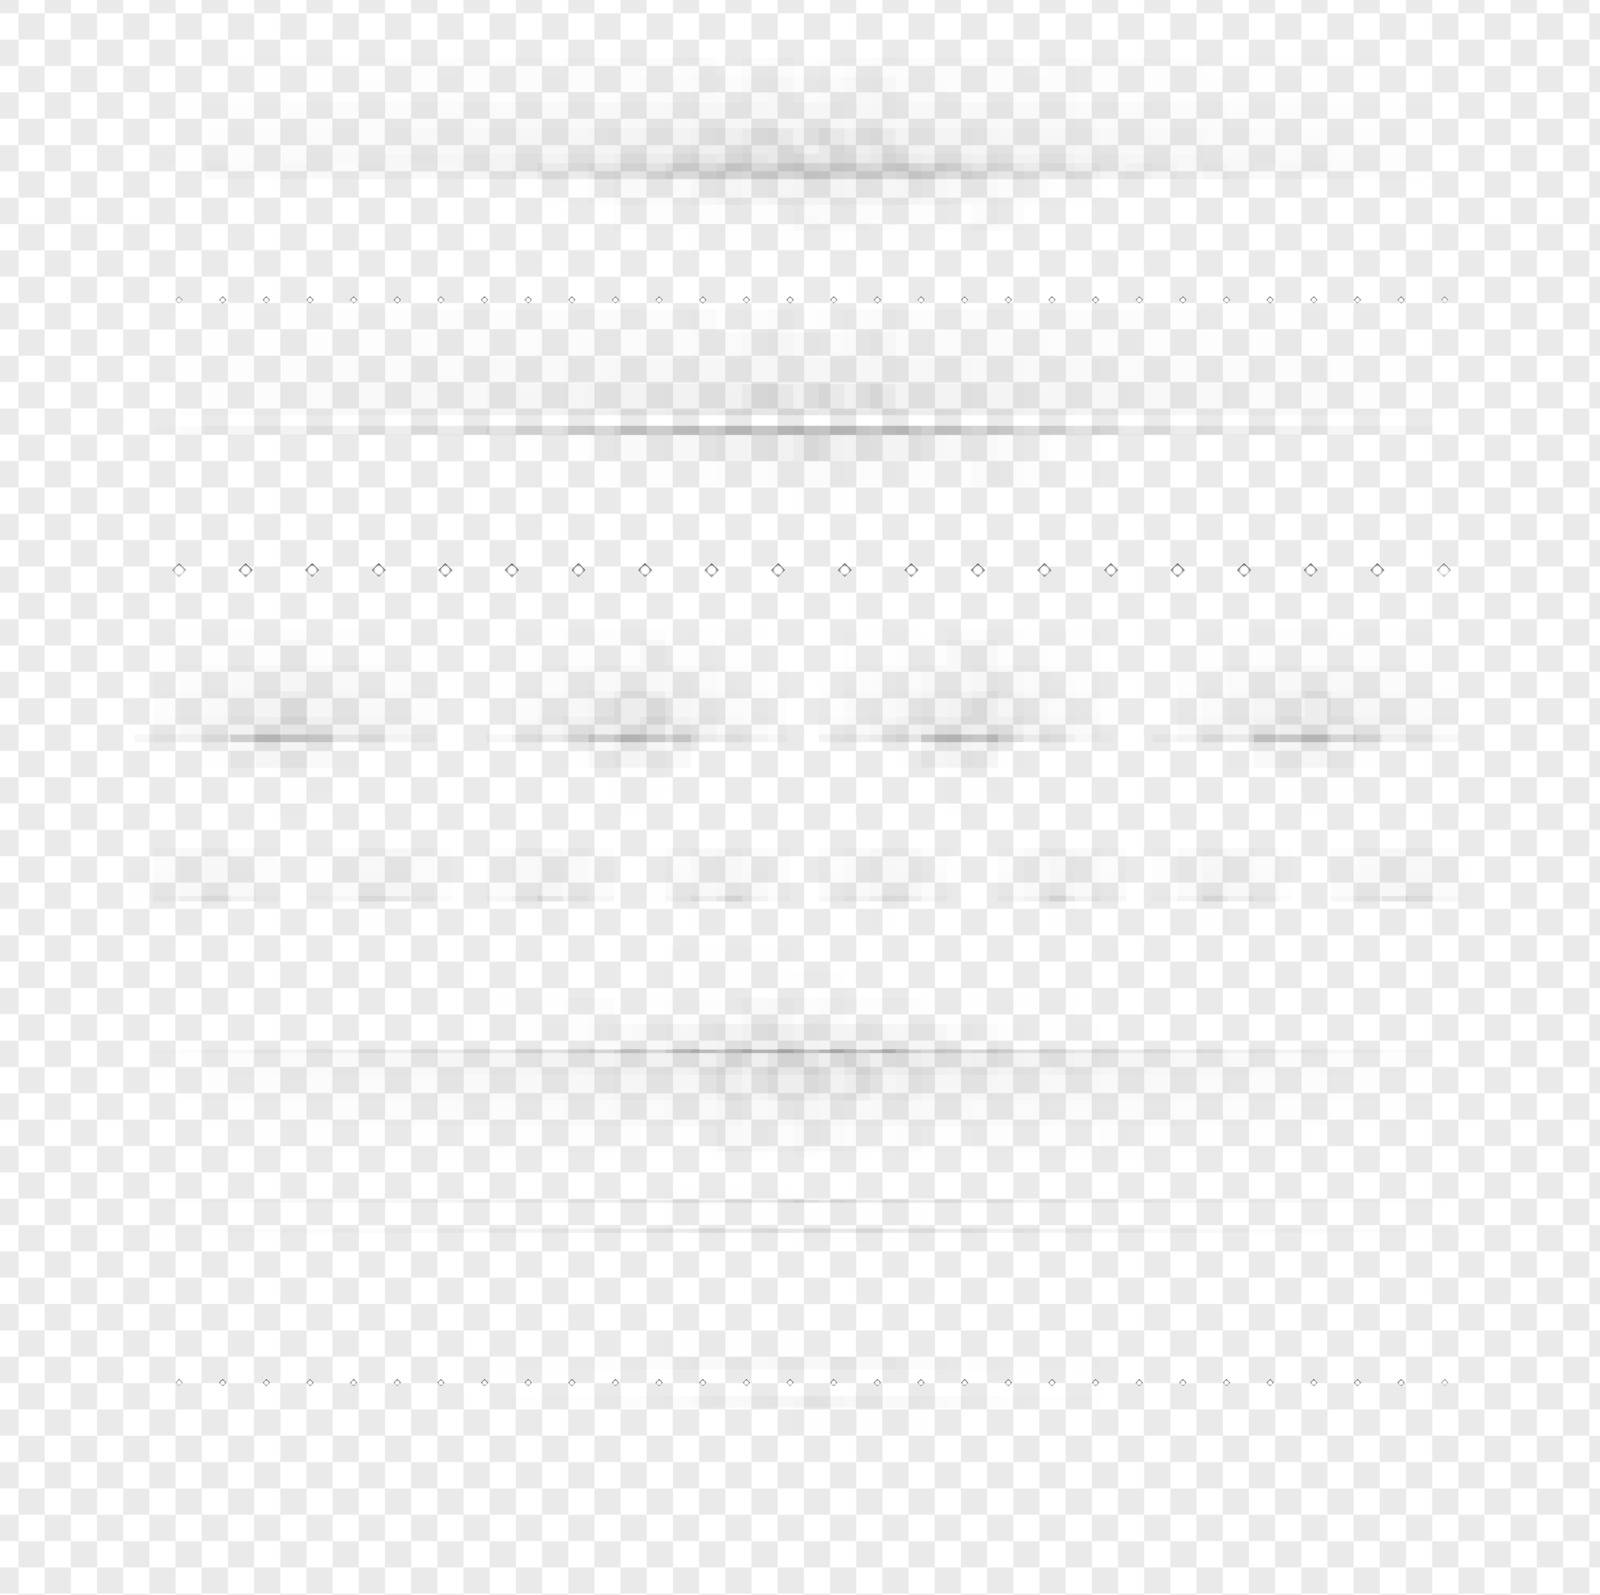 Set Of Dividers Big Set Isolated on Transparent Background, With Gradient Mesh, Vector Illustration